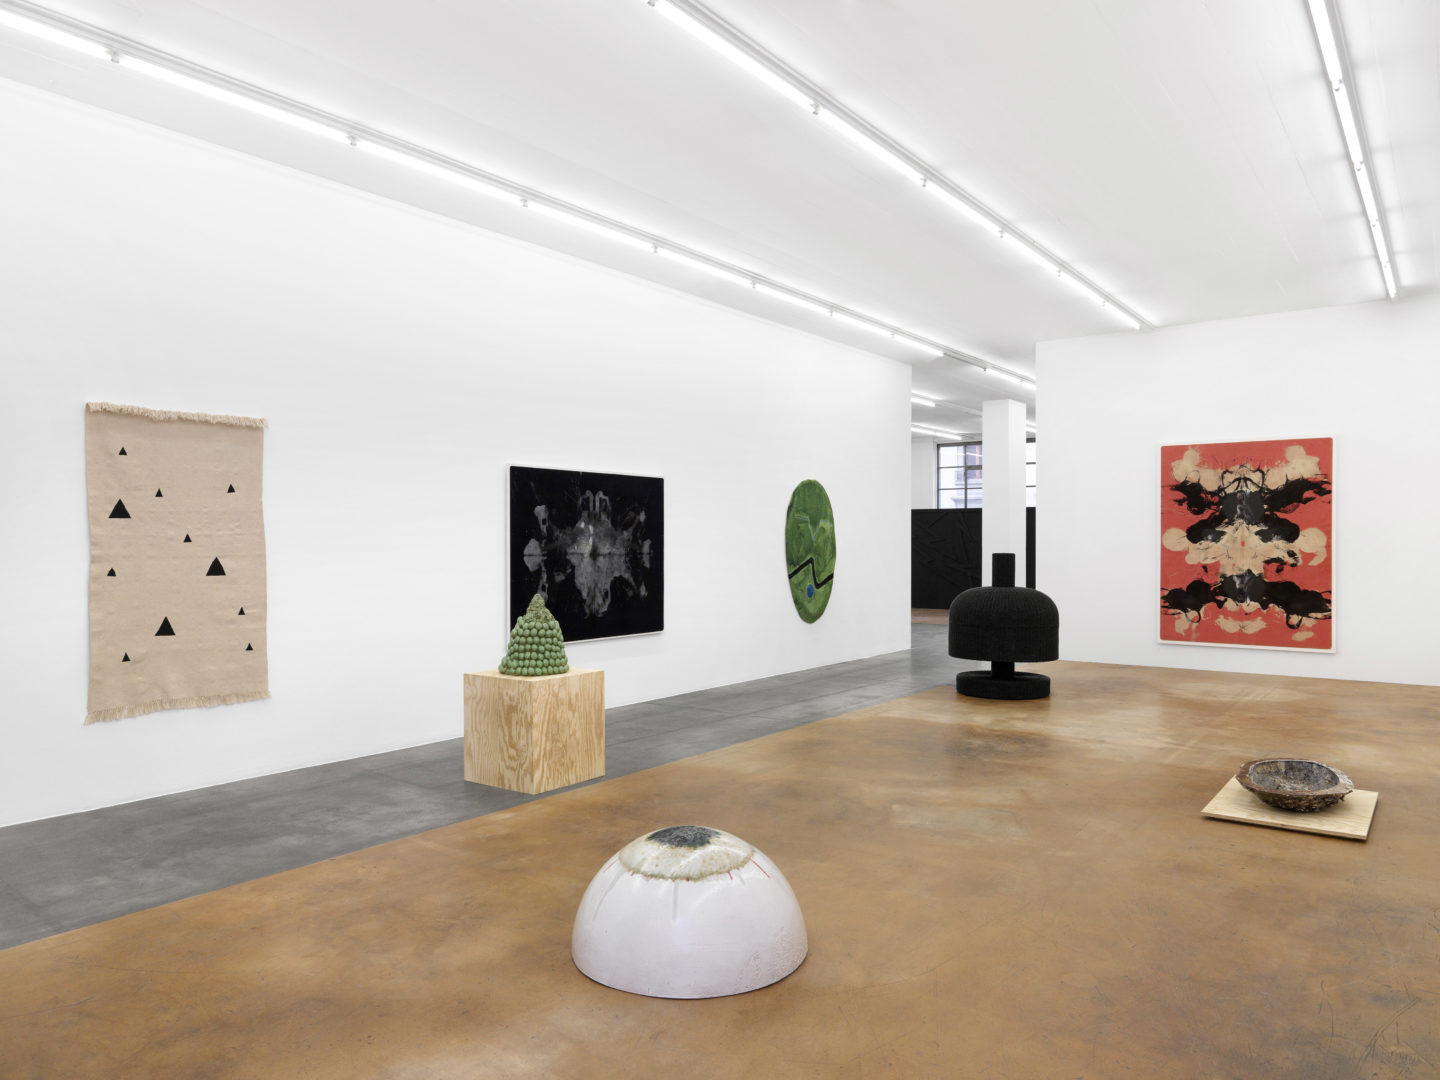 Exhibition View Mai-Thu Perret Soloshow at MAMCO, Geneva, 2018 / Photo: Annik Wetter / Courtesy: the artist and MAMCO, Geneva